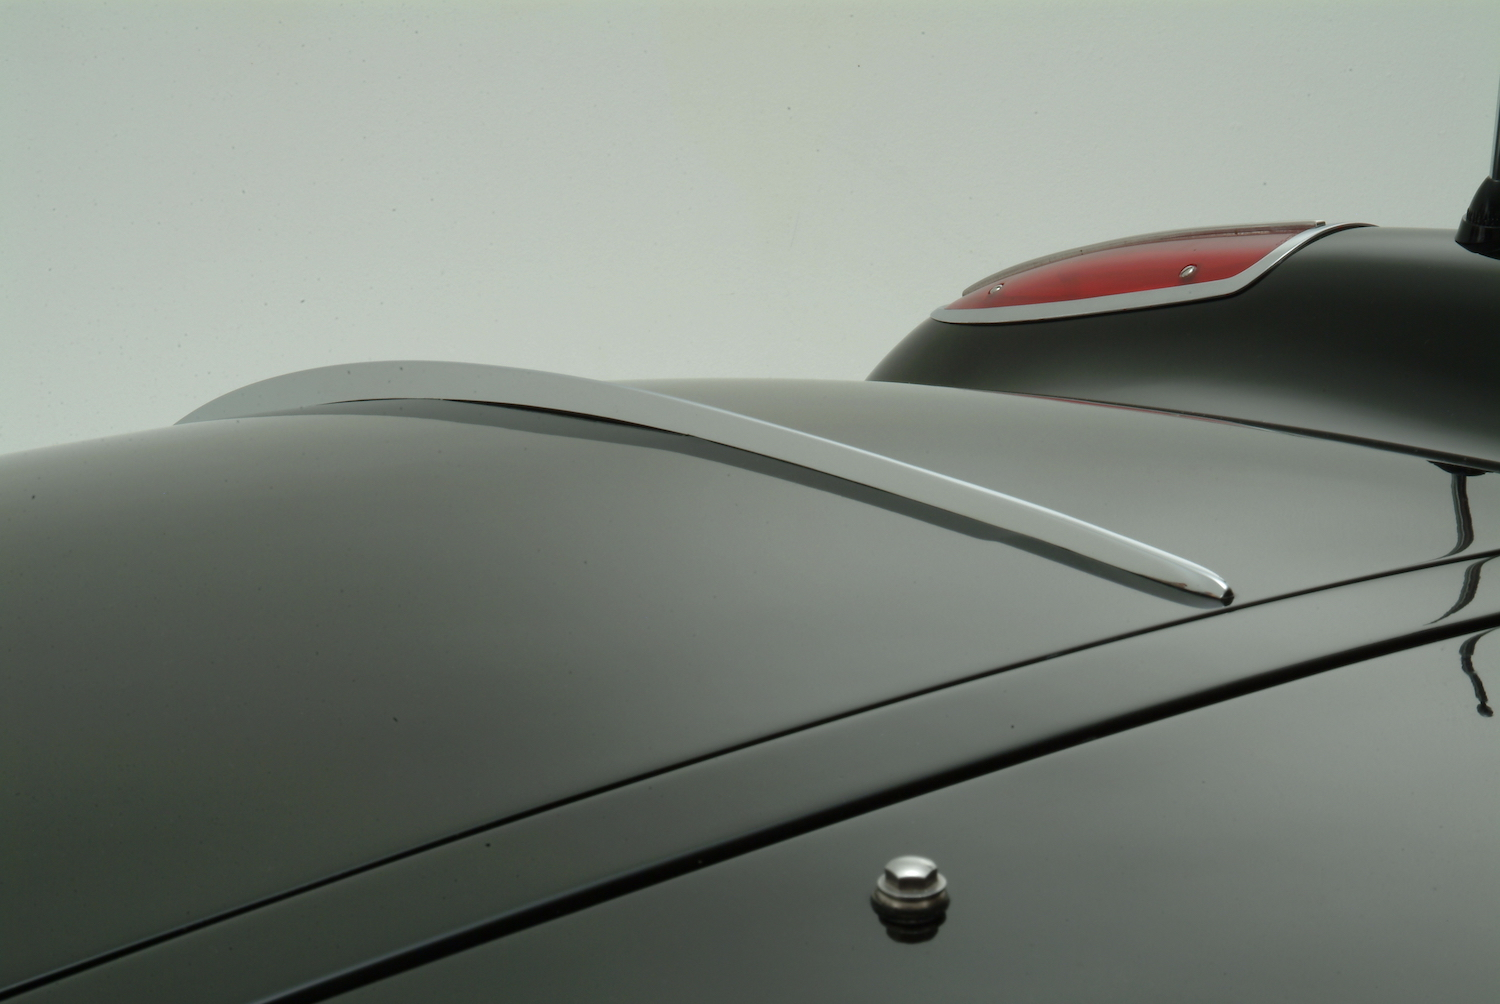 rear bonnet close-up